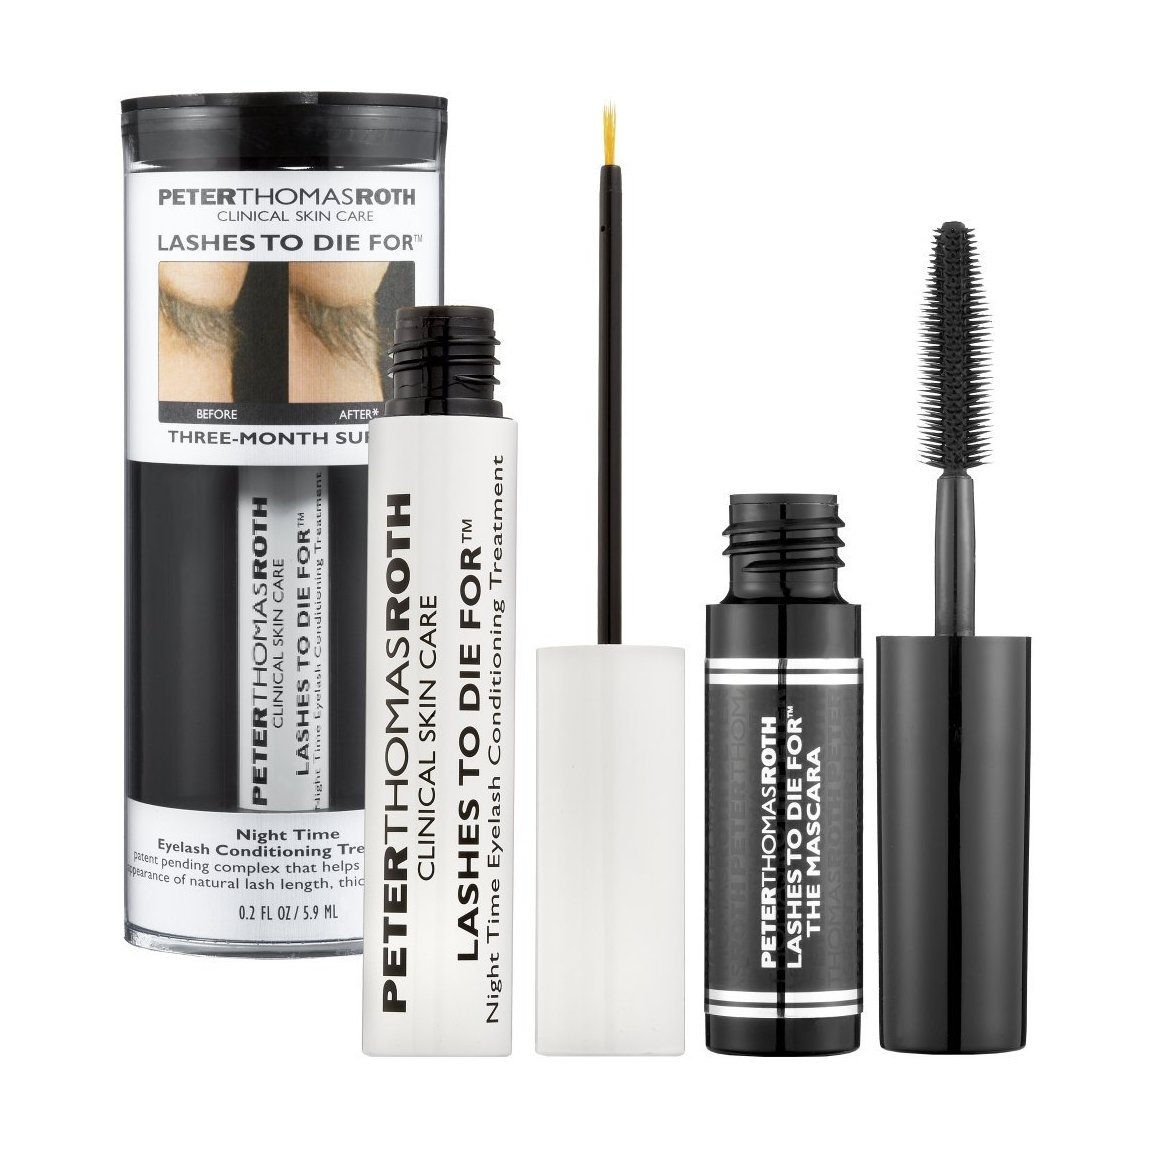 e76b06216c9 Peter Thomas Roth Lashes To Die For with Mini Lashes To Die For The Mascara  | Beautylish